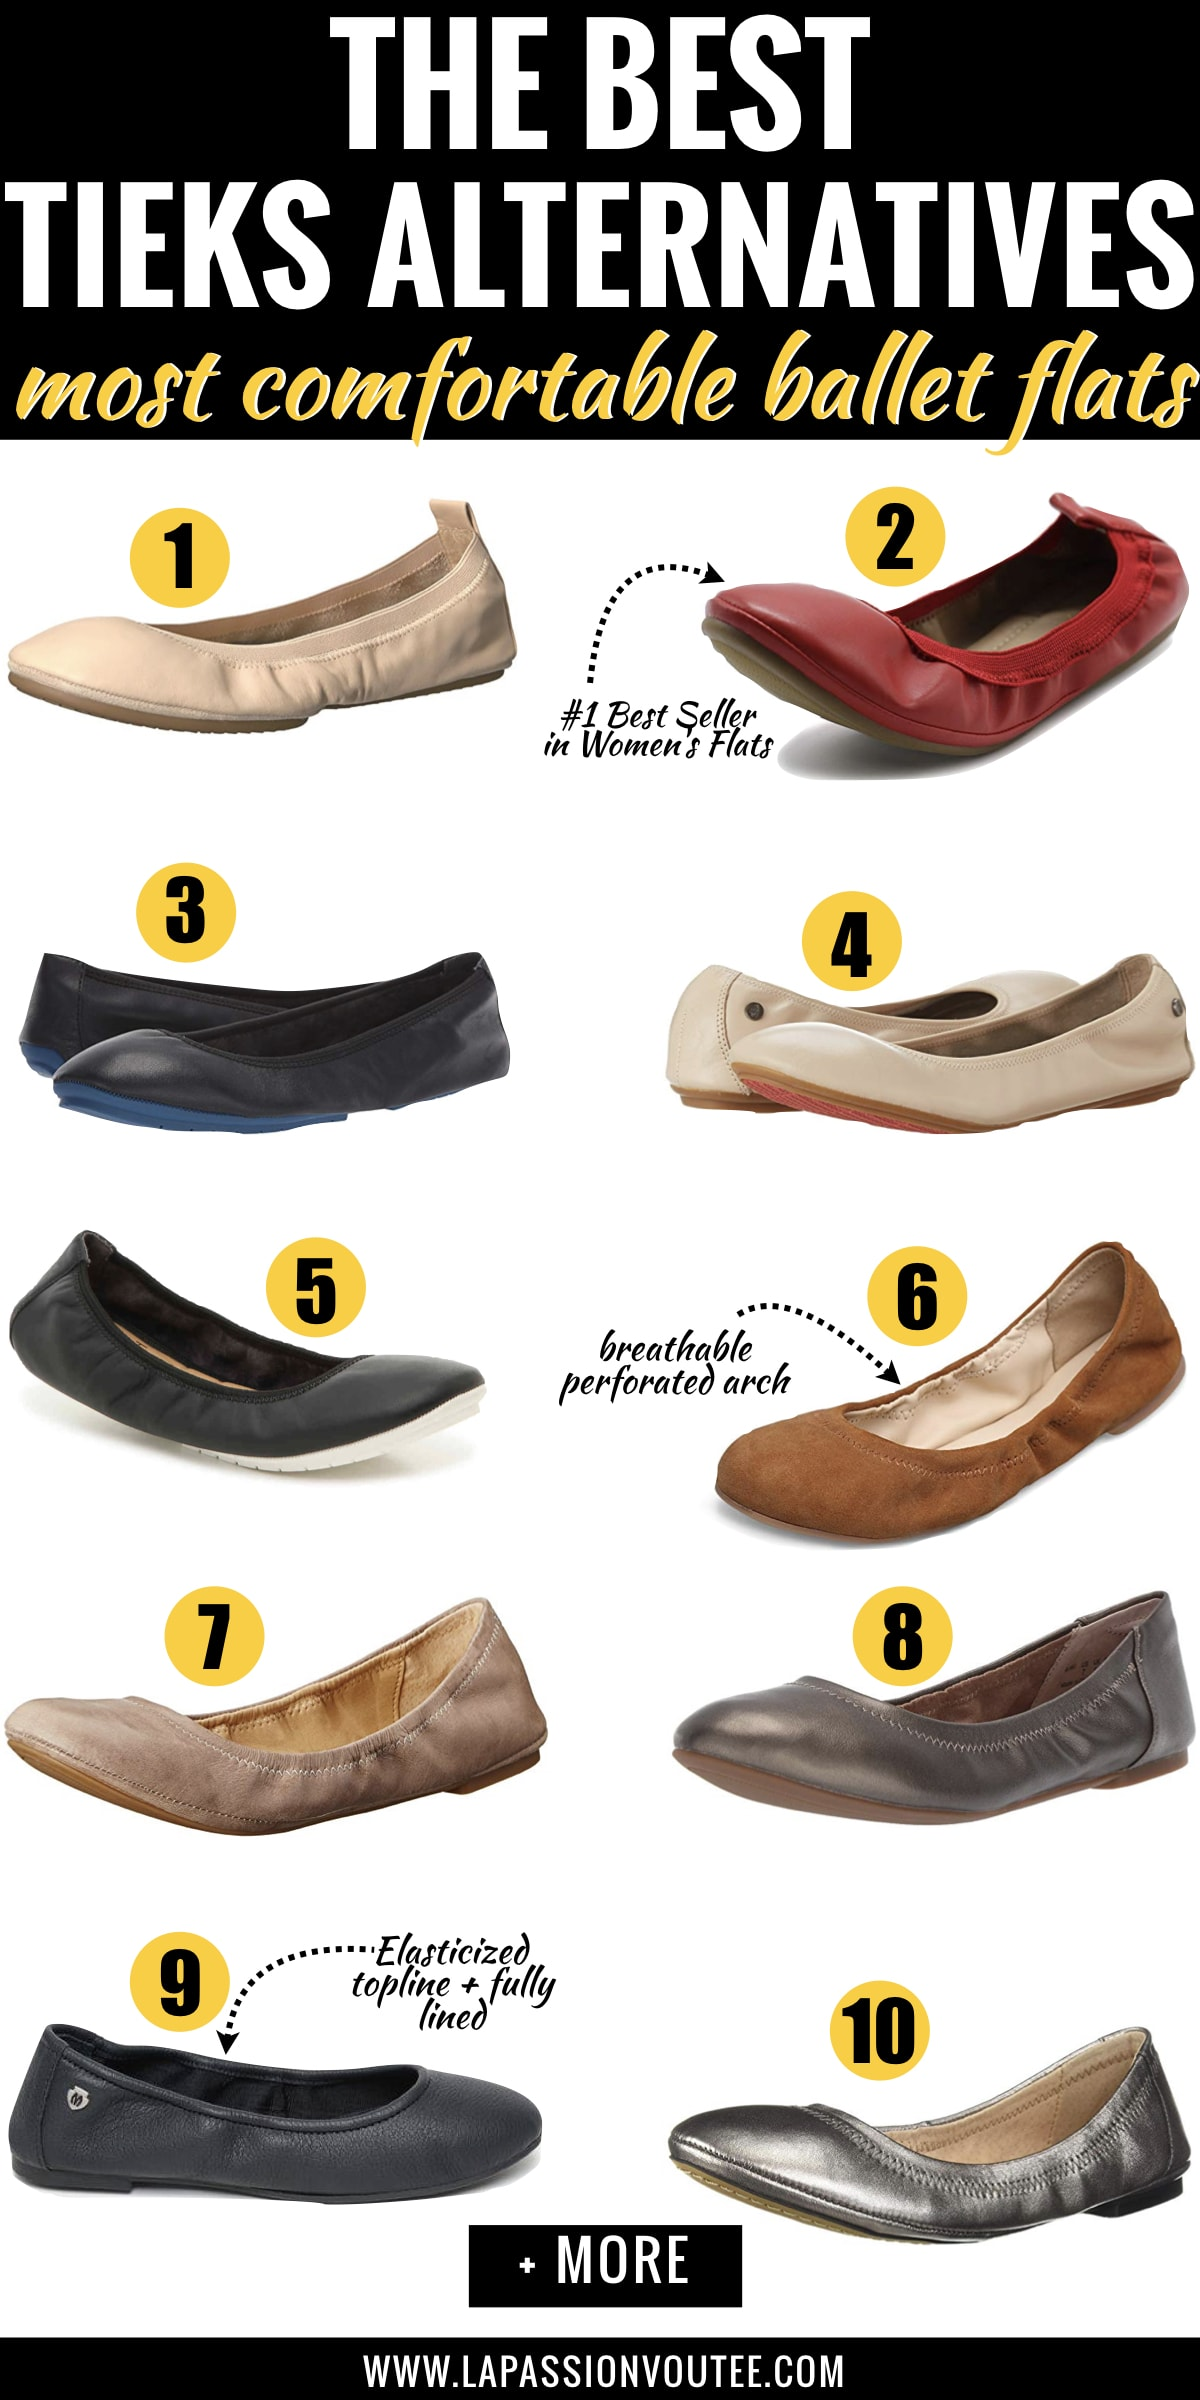 These are the most comfortable ballet flats that are comparable to Tieks but cost significantly less. #15 is my favorite!